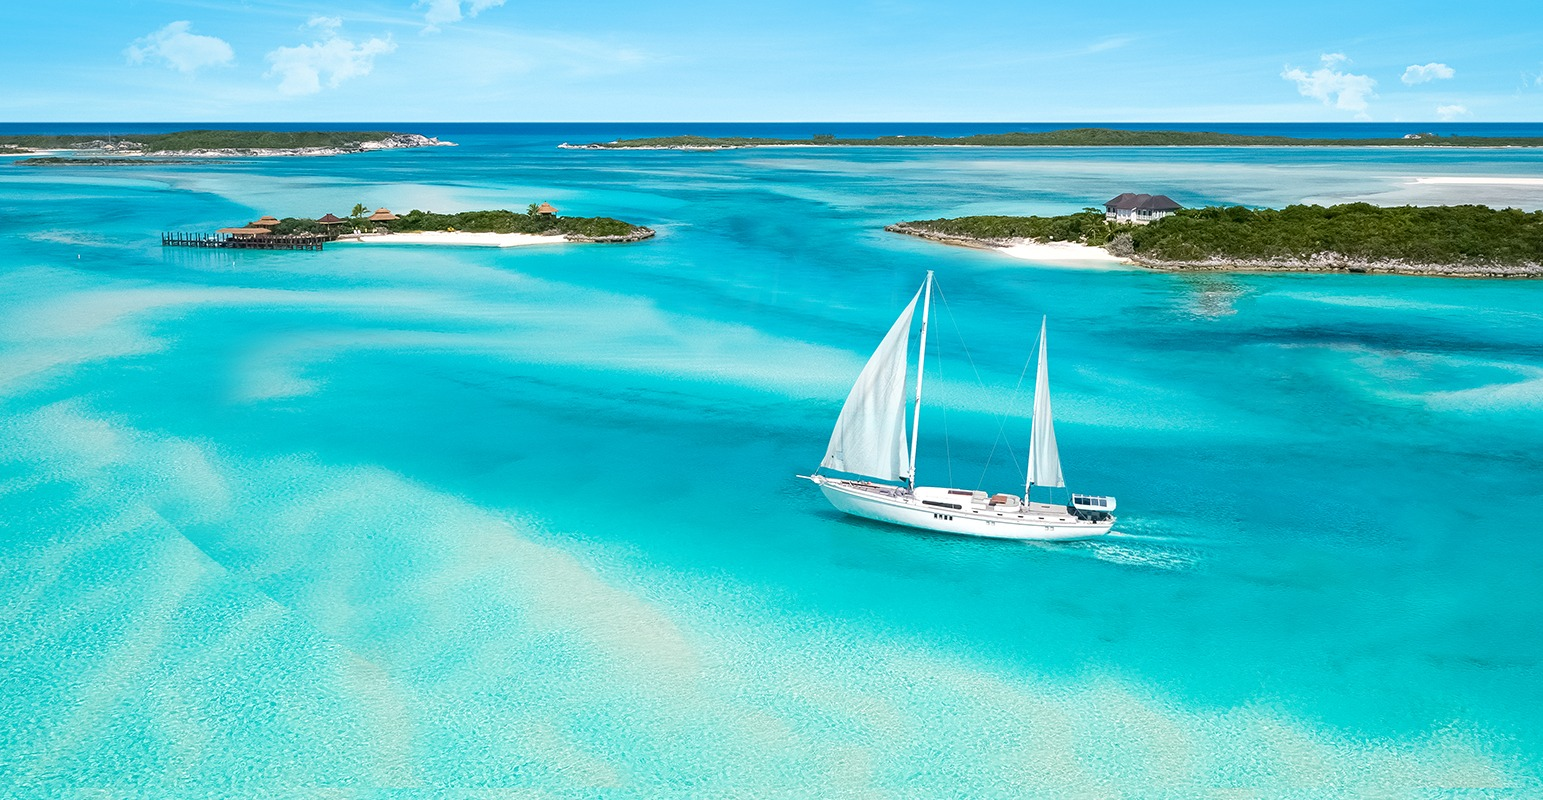 Things to Do in the Caribbean